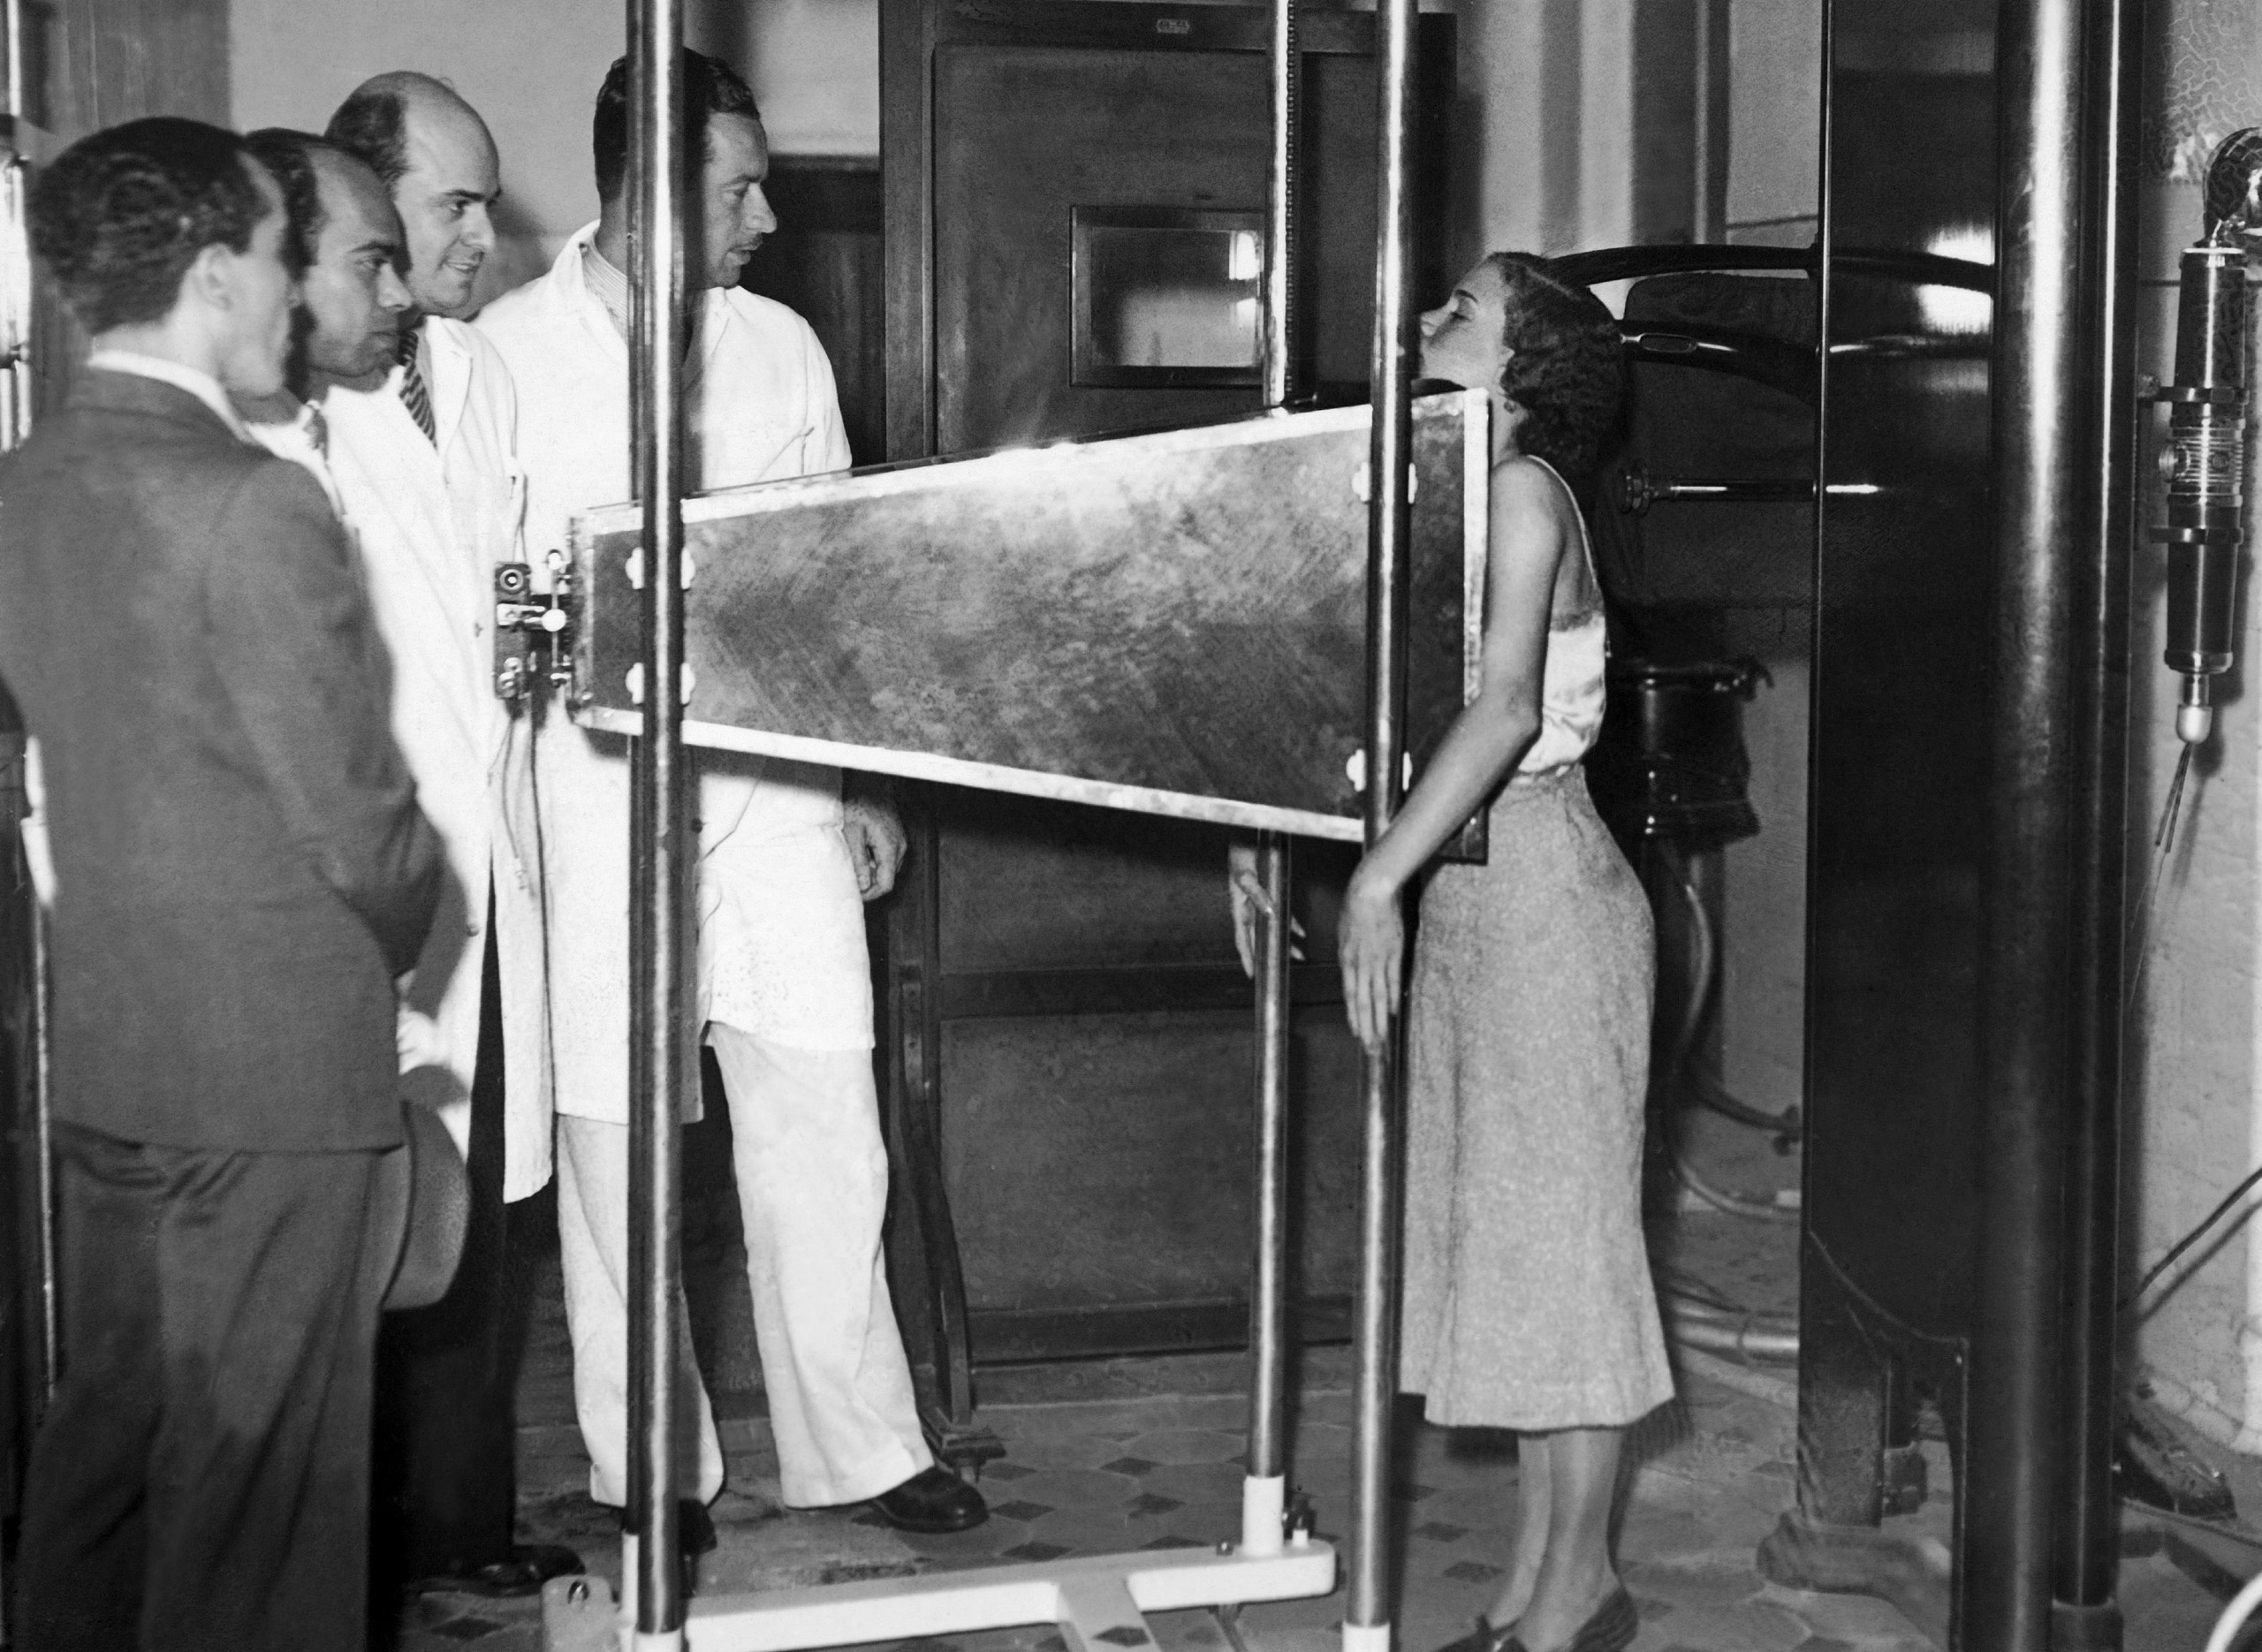 In October 1937 in Rio de Janeiro, a radiograph invented by Professor physicist Moraes De Abreu to detect lung diseases, called Roentgen-Photographie was used on a patient.